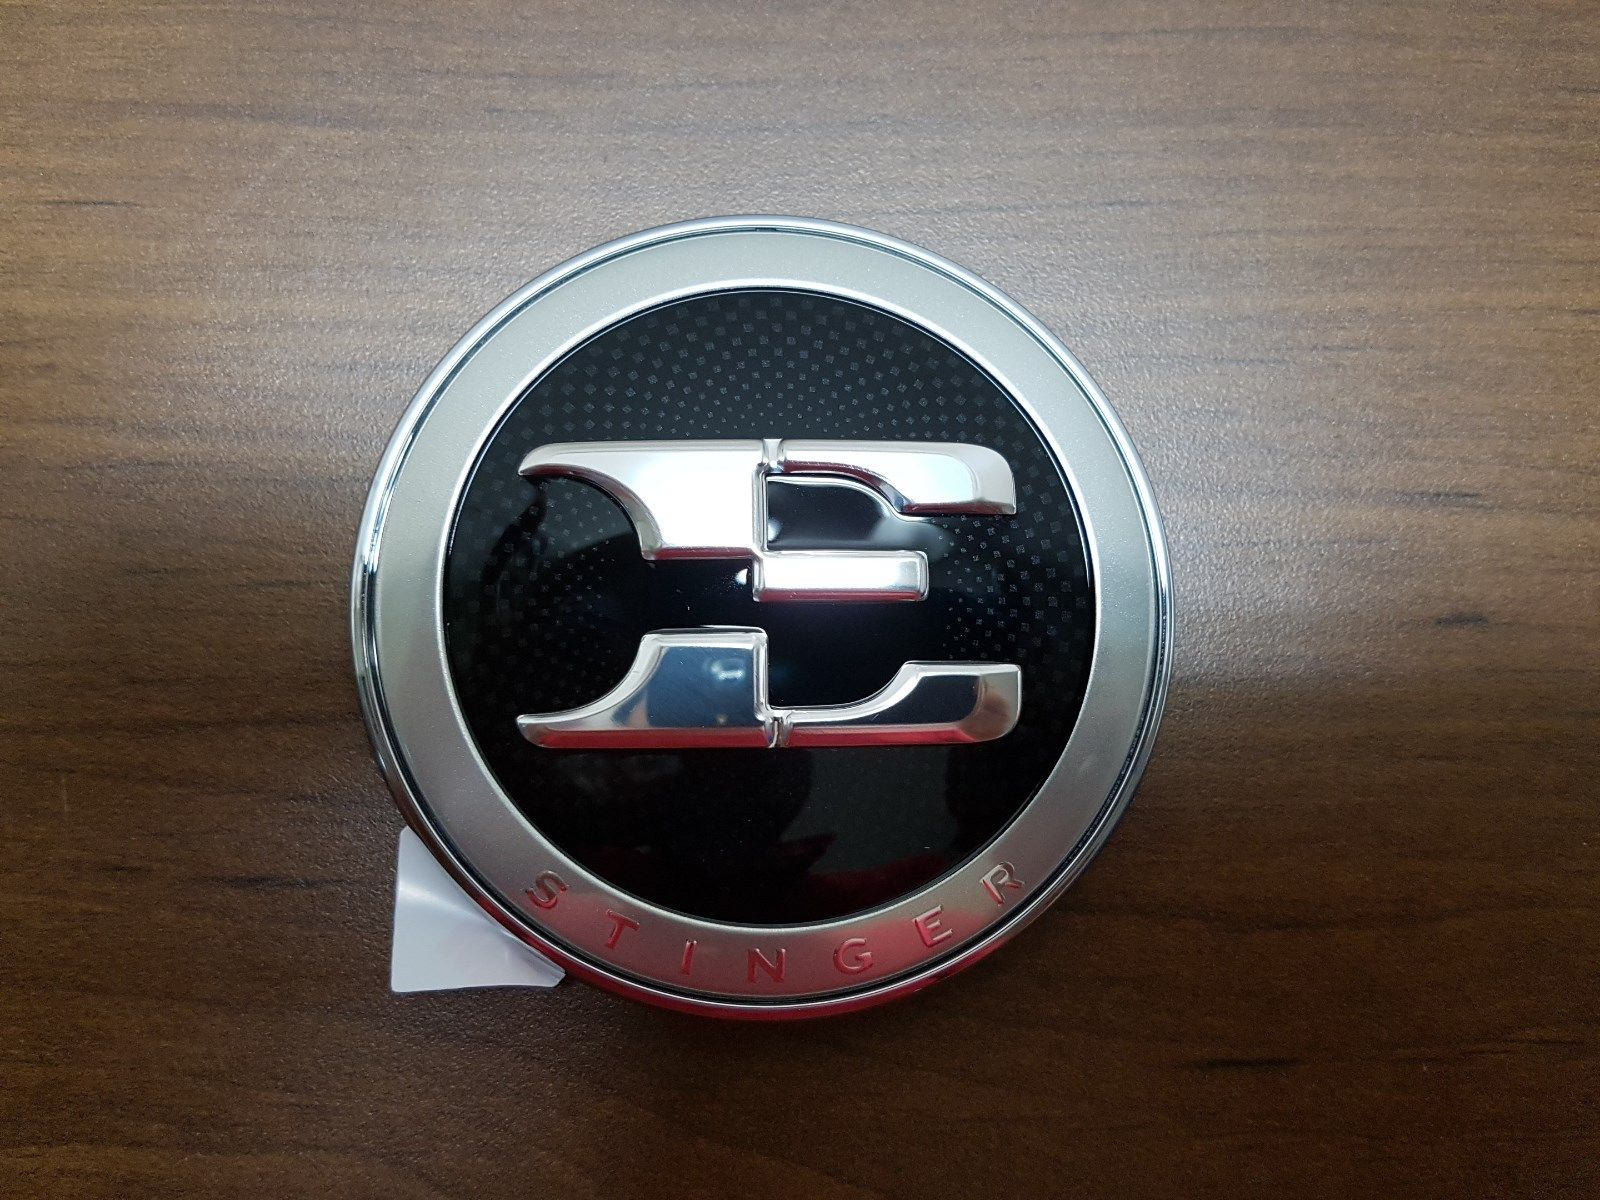 tail rear sportage main emblem new trunk badge kia view item number for logo